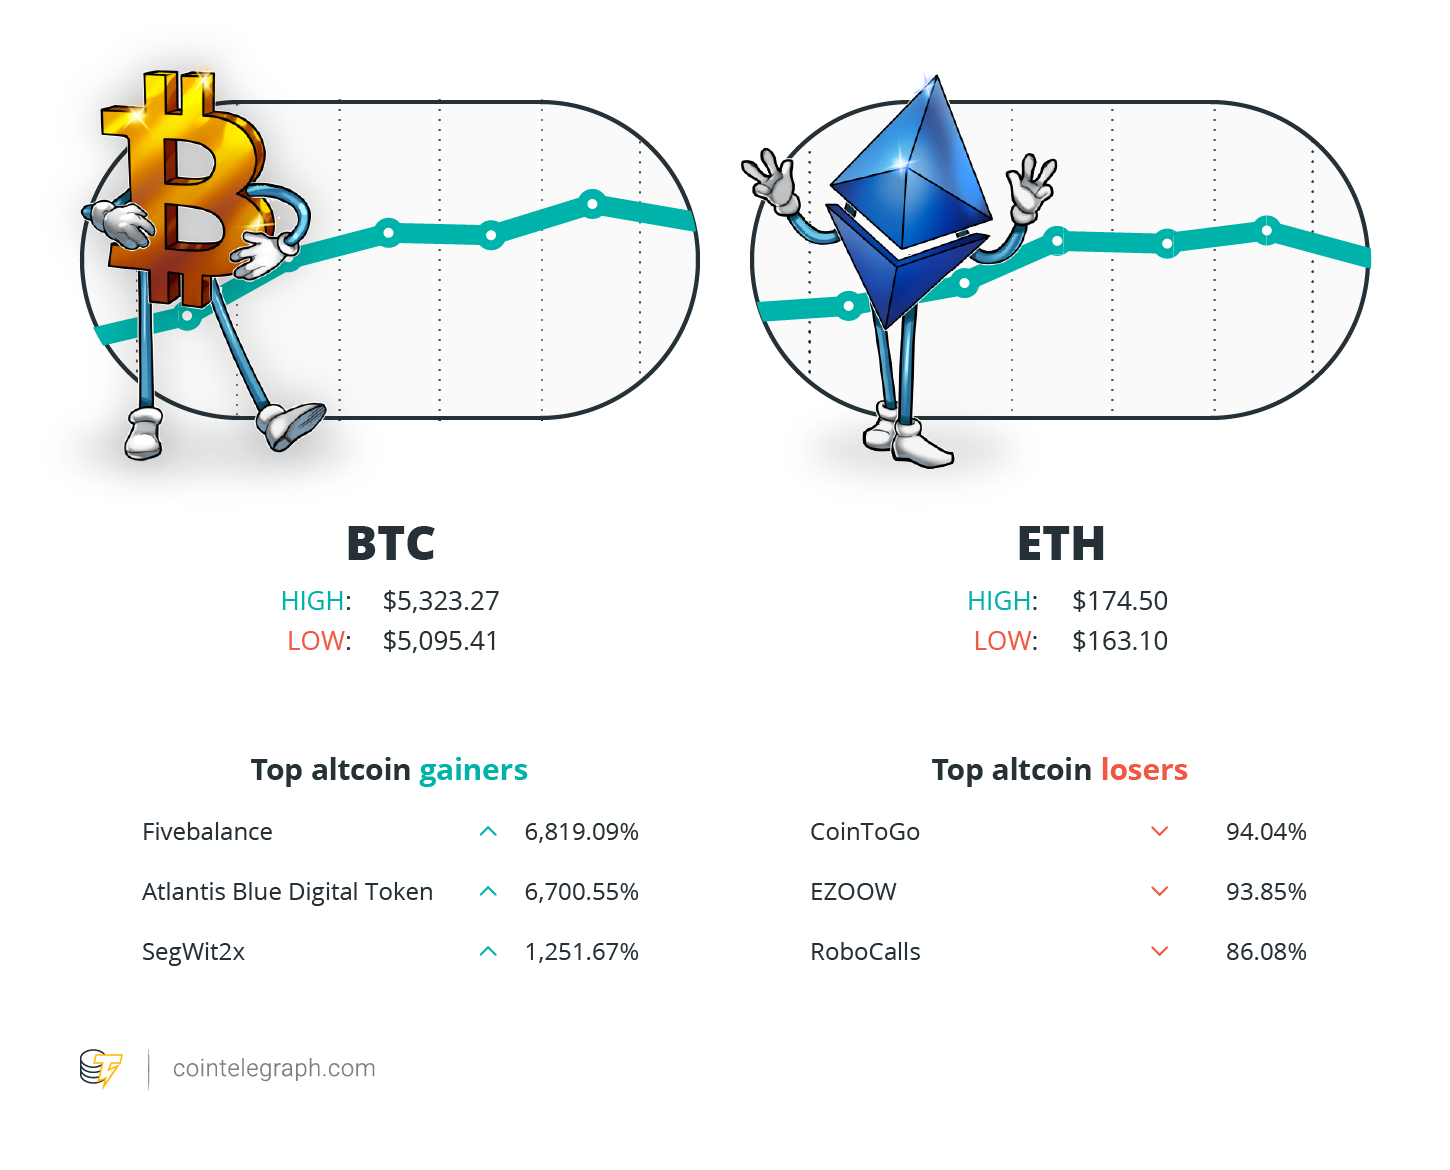 hodlers digest april 1521 top stories price movements quotes and fud of the week